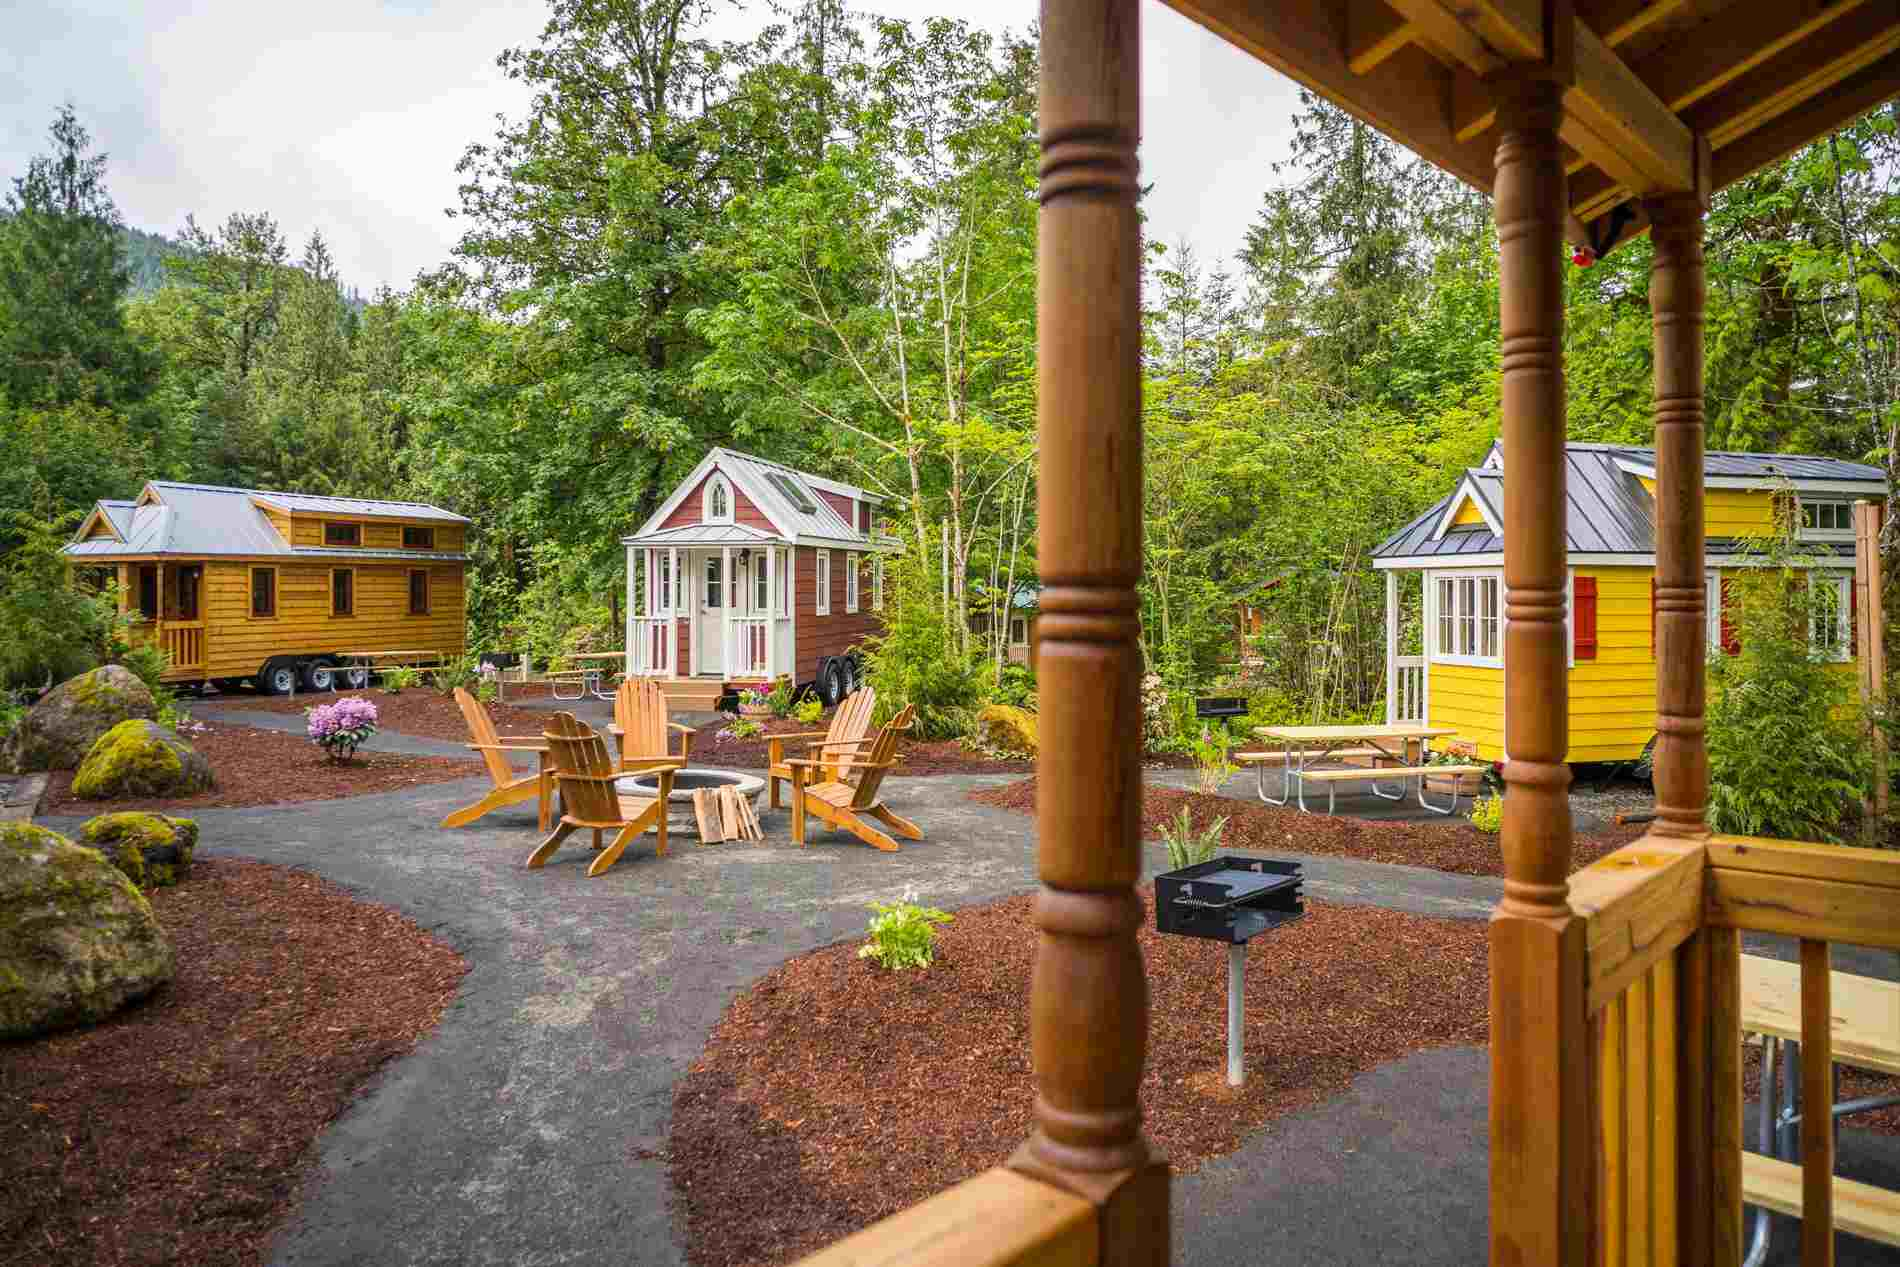 Mount Hood Tiny House Village